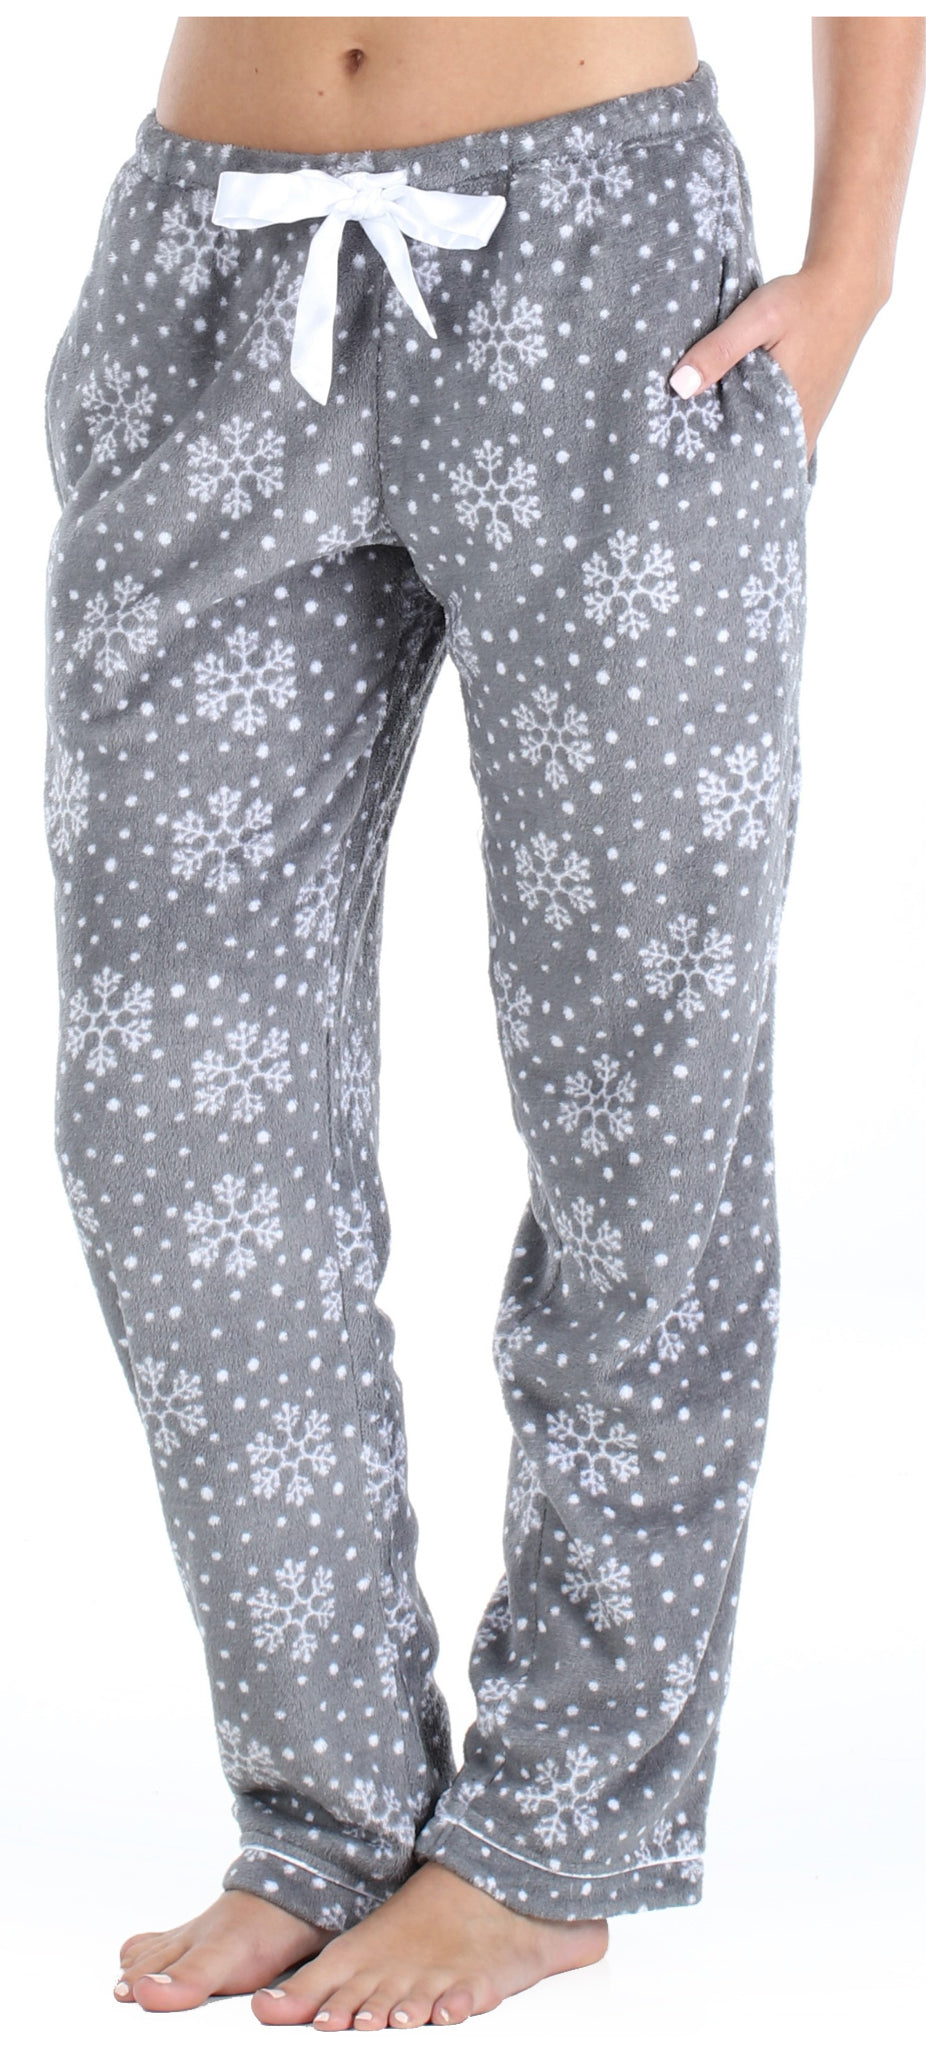 Women's Fleece Pajama PJ Pants